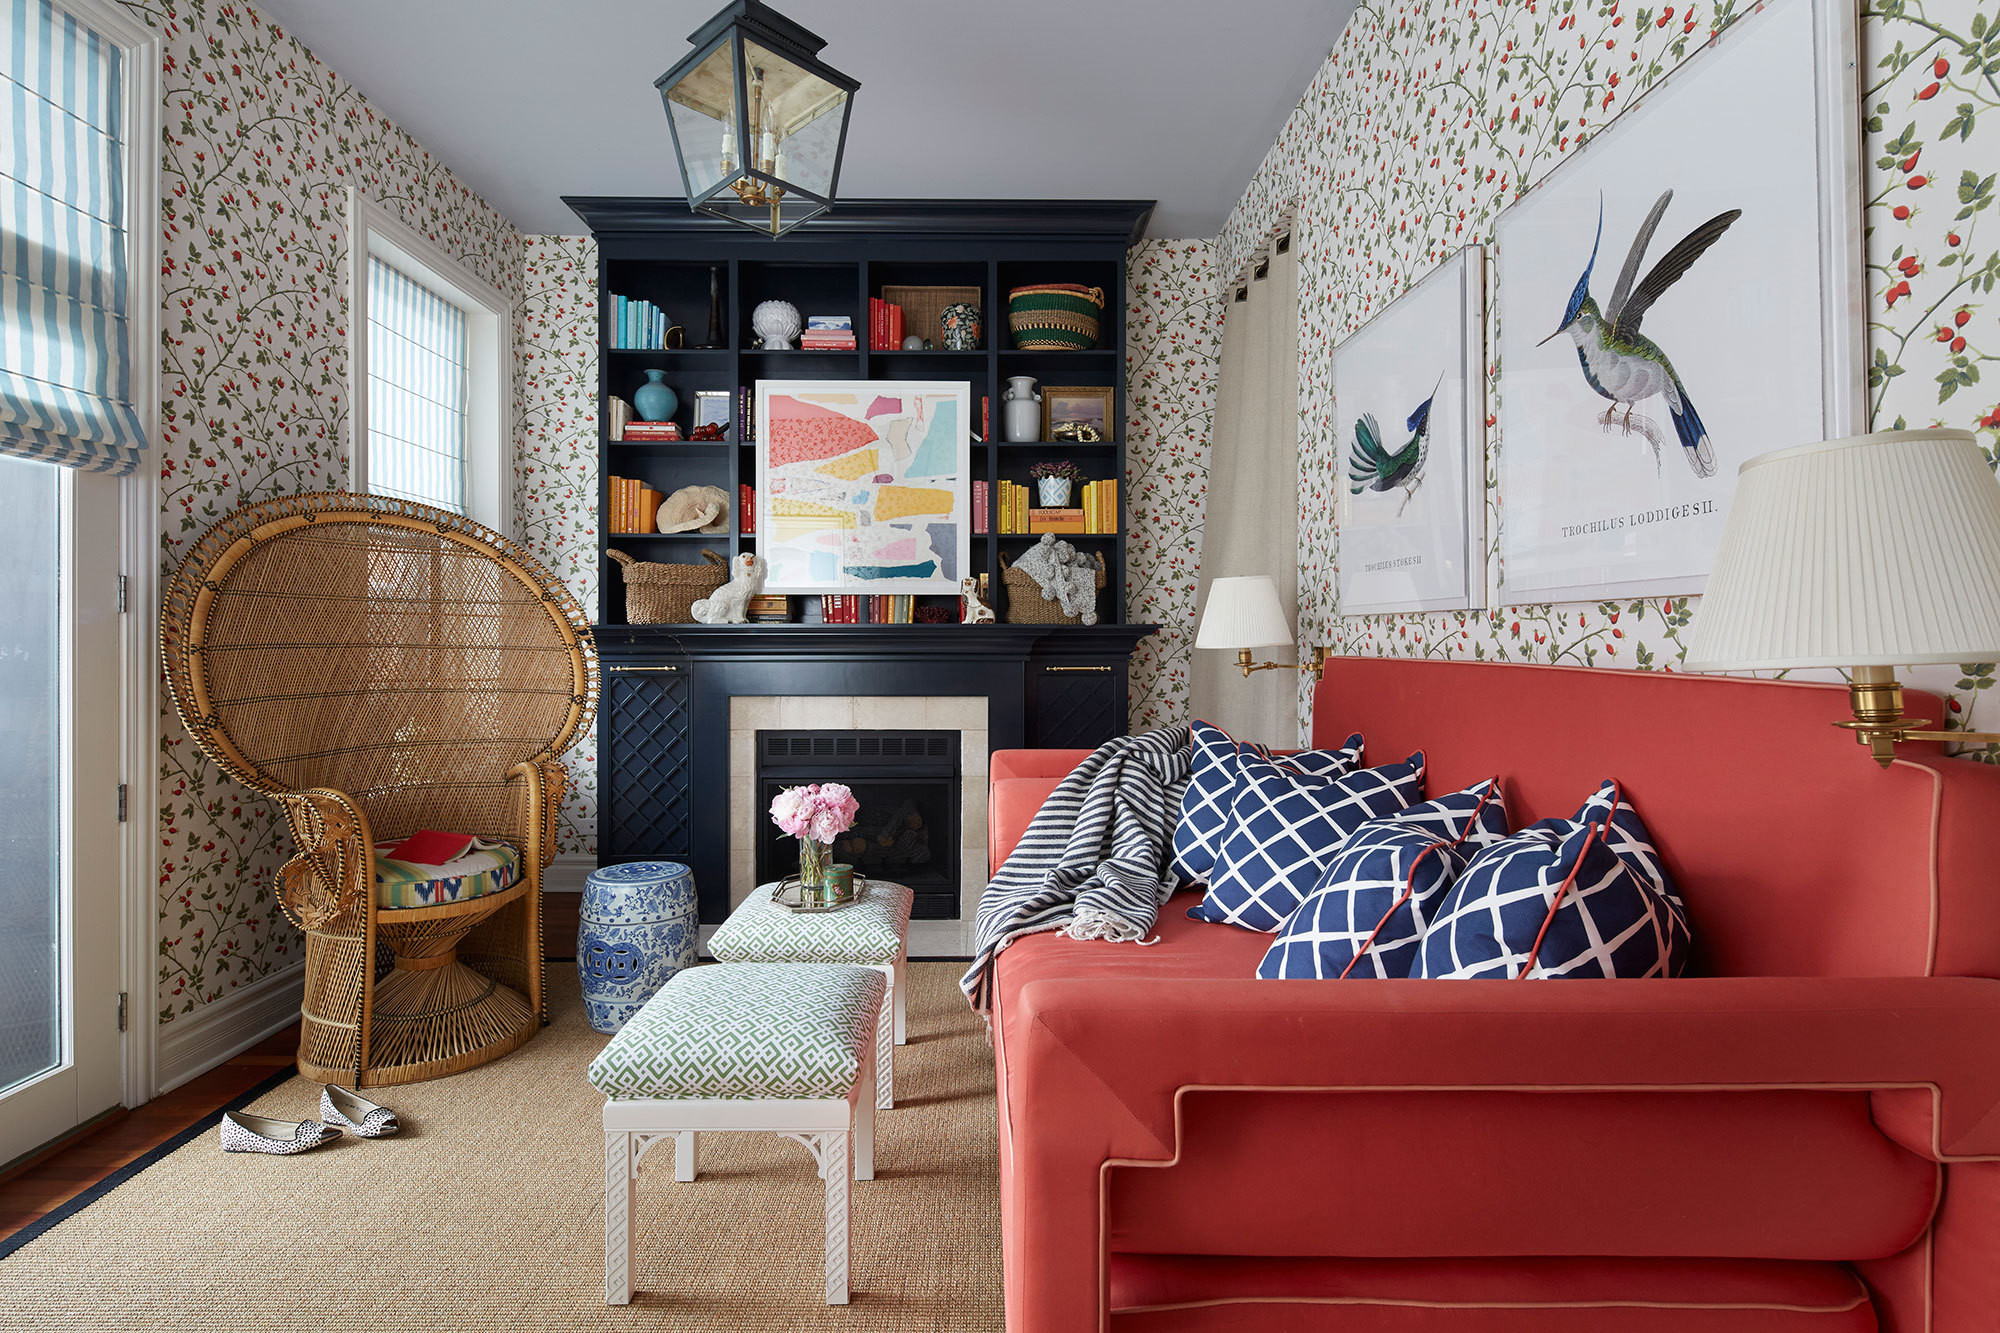 Pattern, texture, and color combine in an eclectic Chicago apartment designed by Summer Thornton.